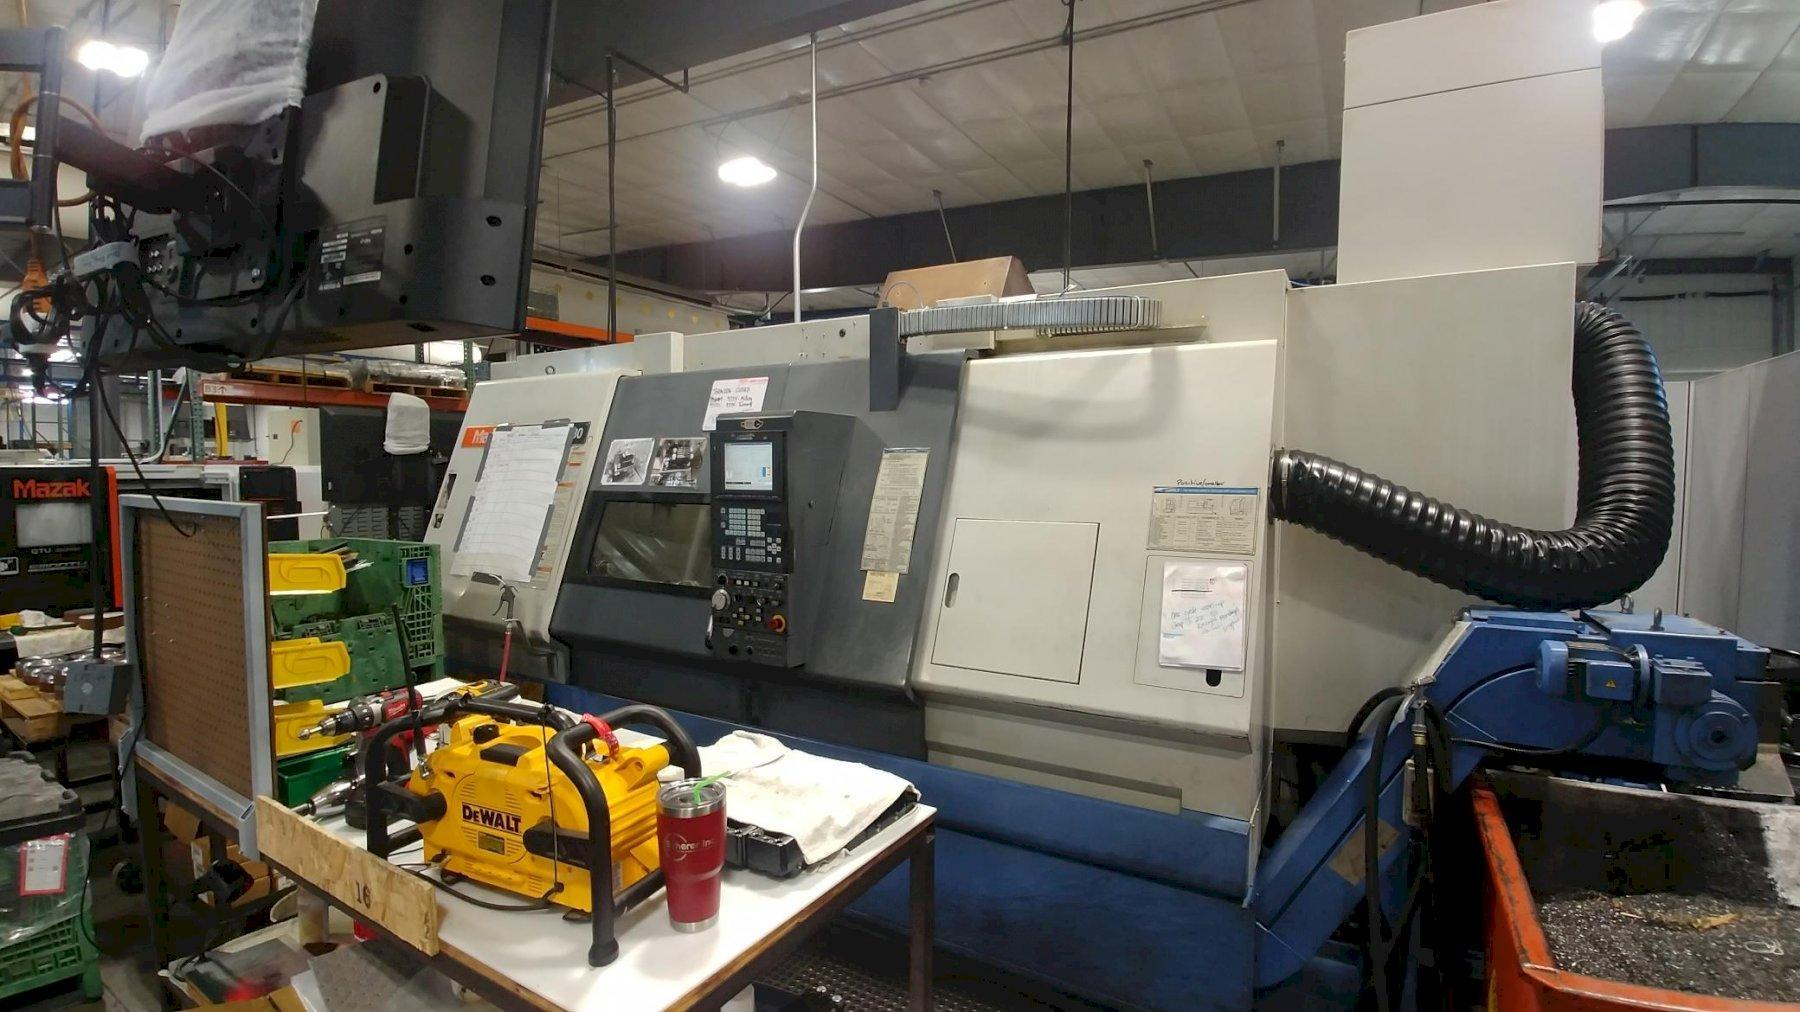 "MAZAKMazak Integrex 30Y/1500 CNC Turning Center; 62"" Length, 20"" Swing, 3"" Bar cap, 10"" Chucks